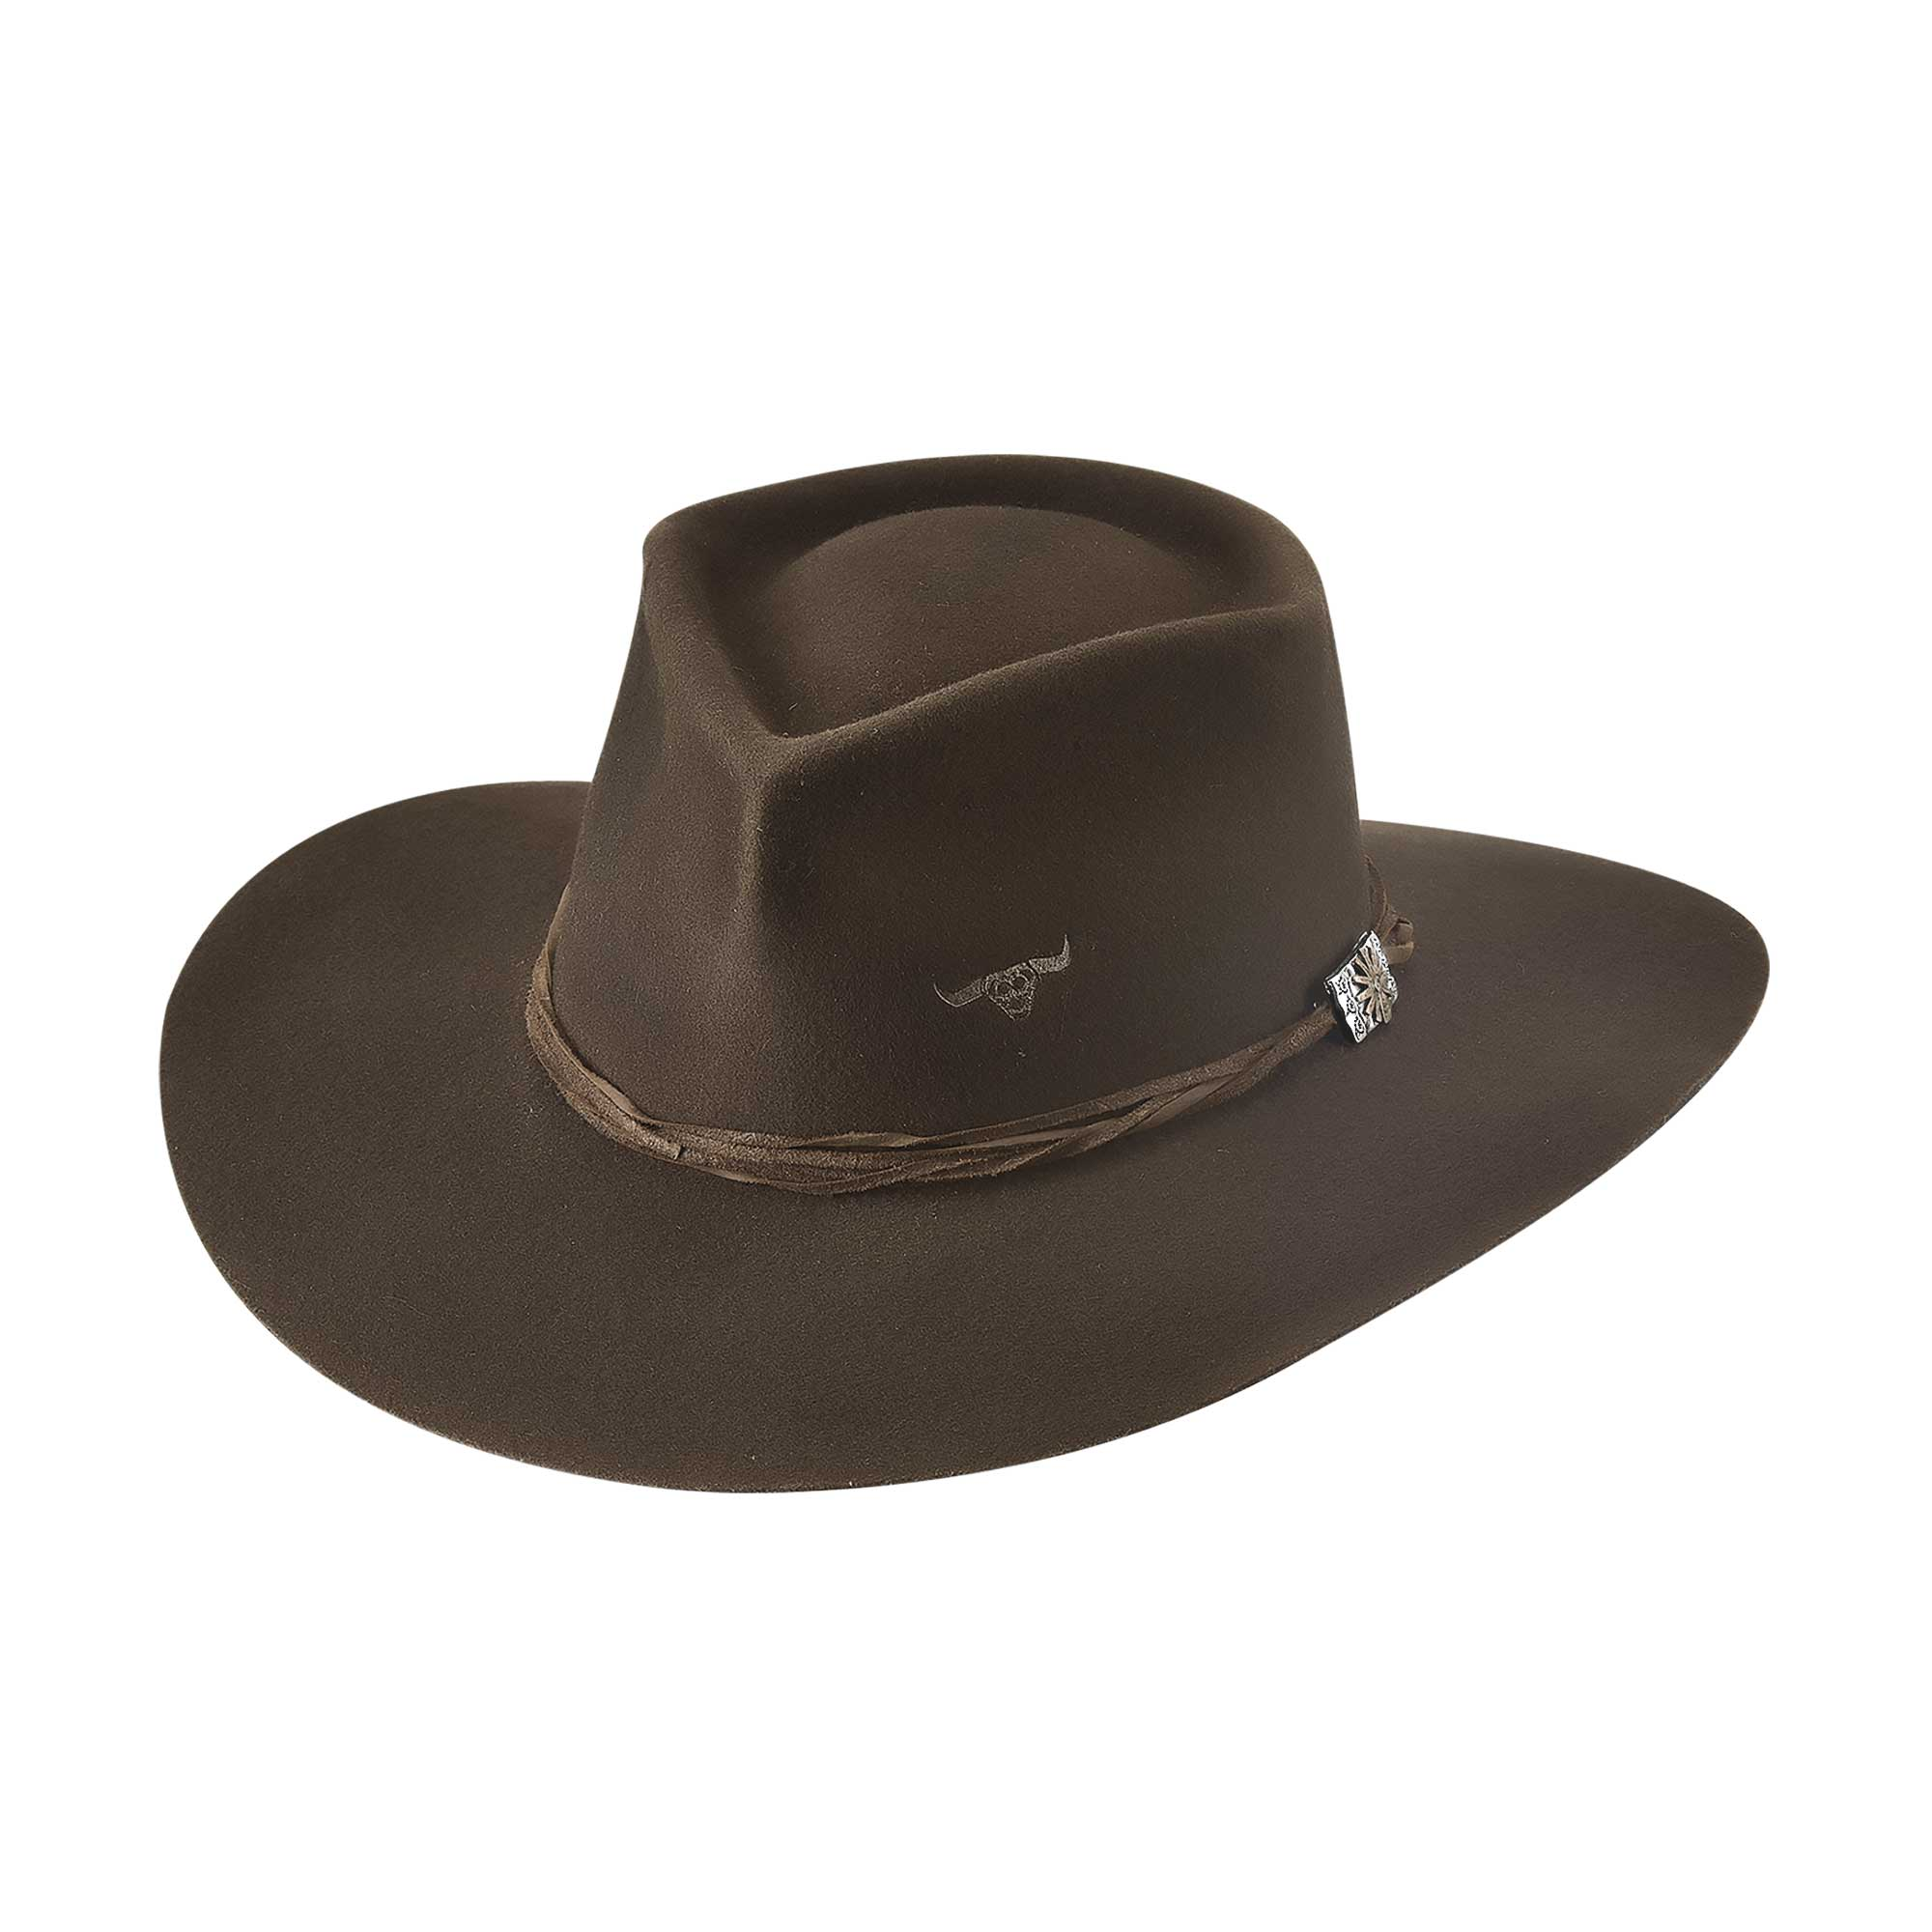 NEW Bullhide Hats 2702 Cowboy Collection Country Strong 30X Black Cowboy Hat